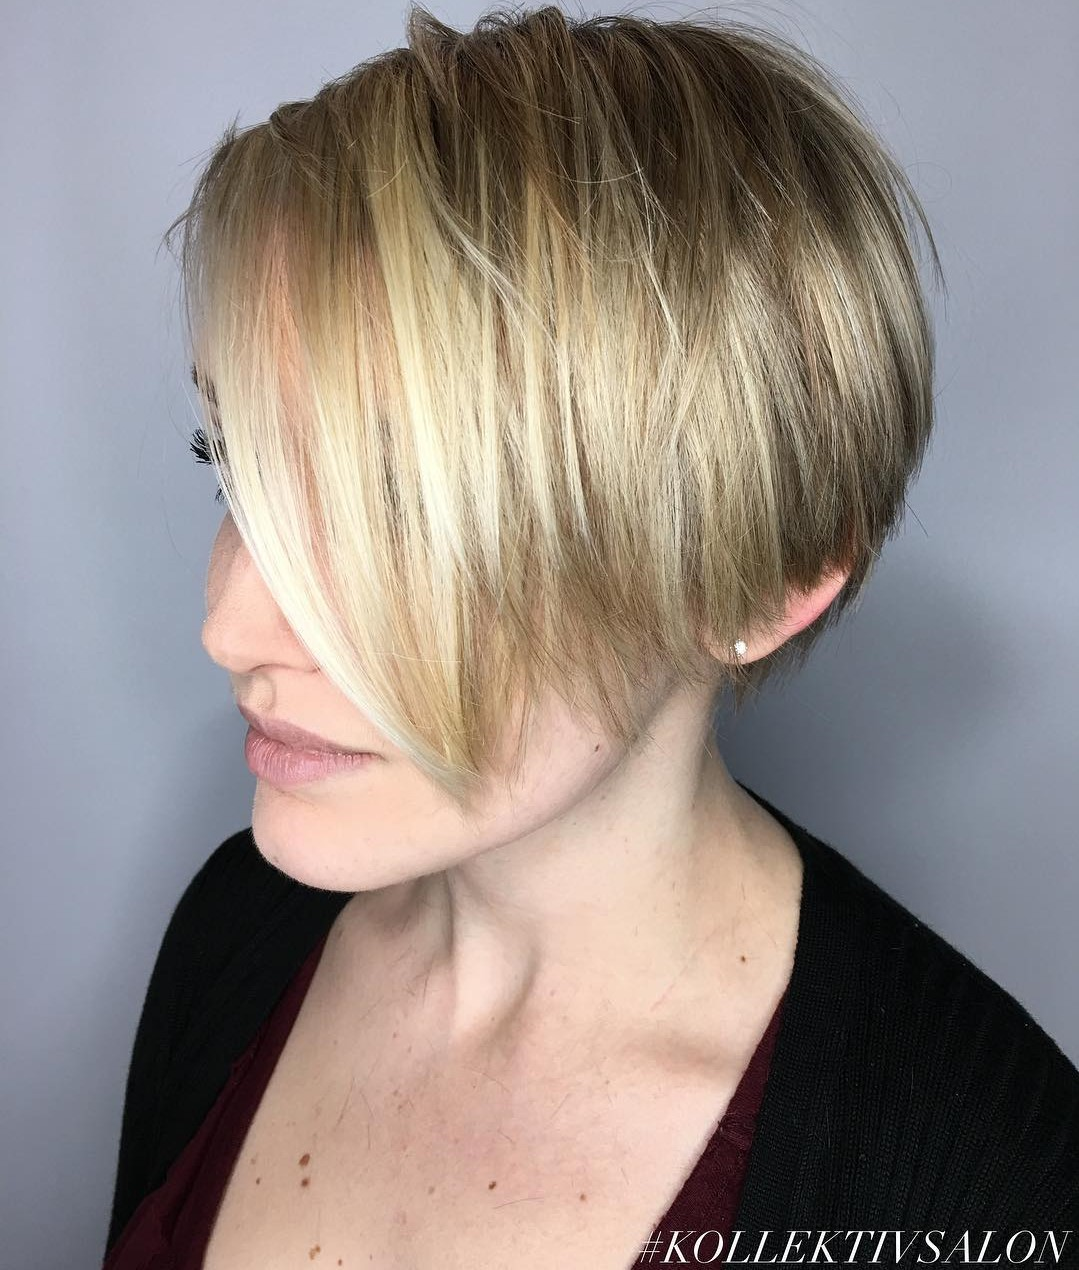 50 Long Pixie Cuts To Make You Stand Out In 2020 Hair